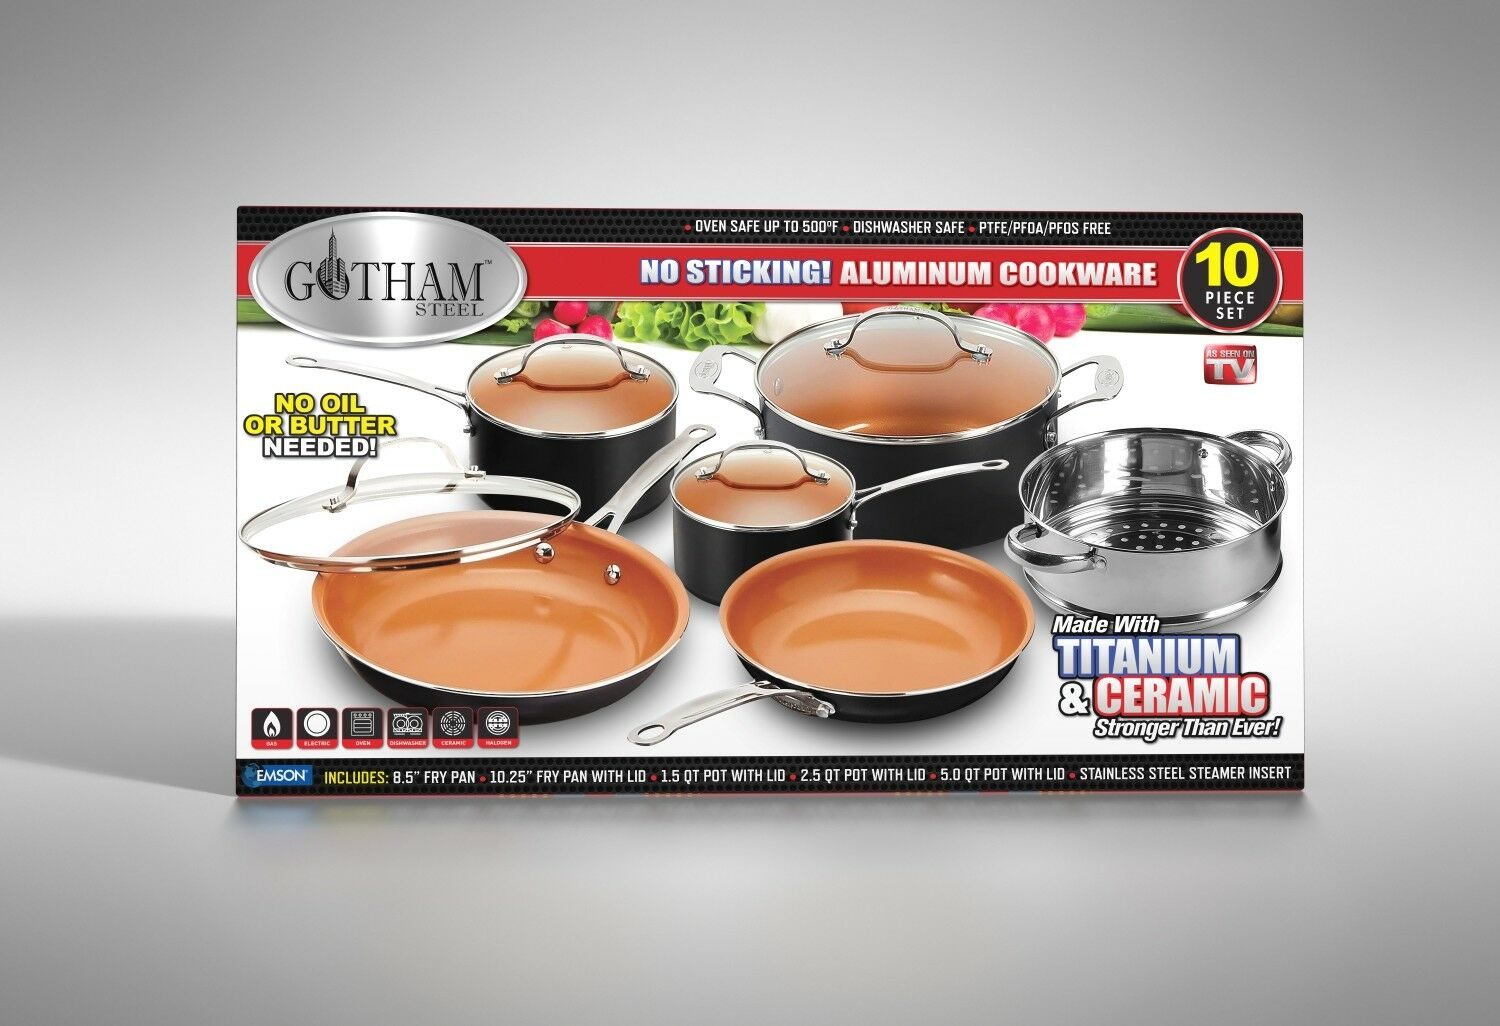 Gotham Steel 10-Piece Kitchen Nonstick Frying Pan & Cookware Set - 4 Colors -NEW